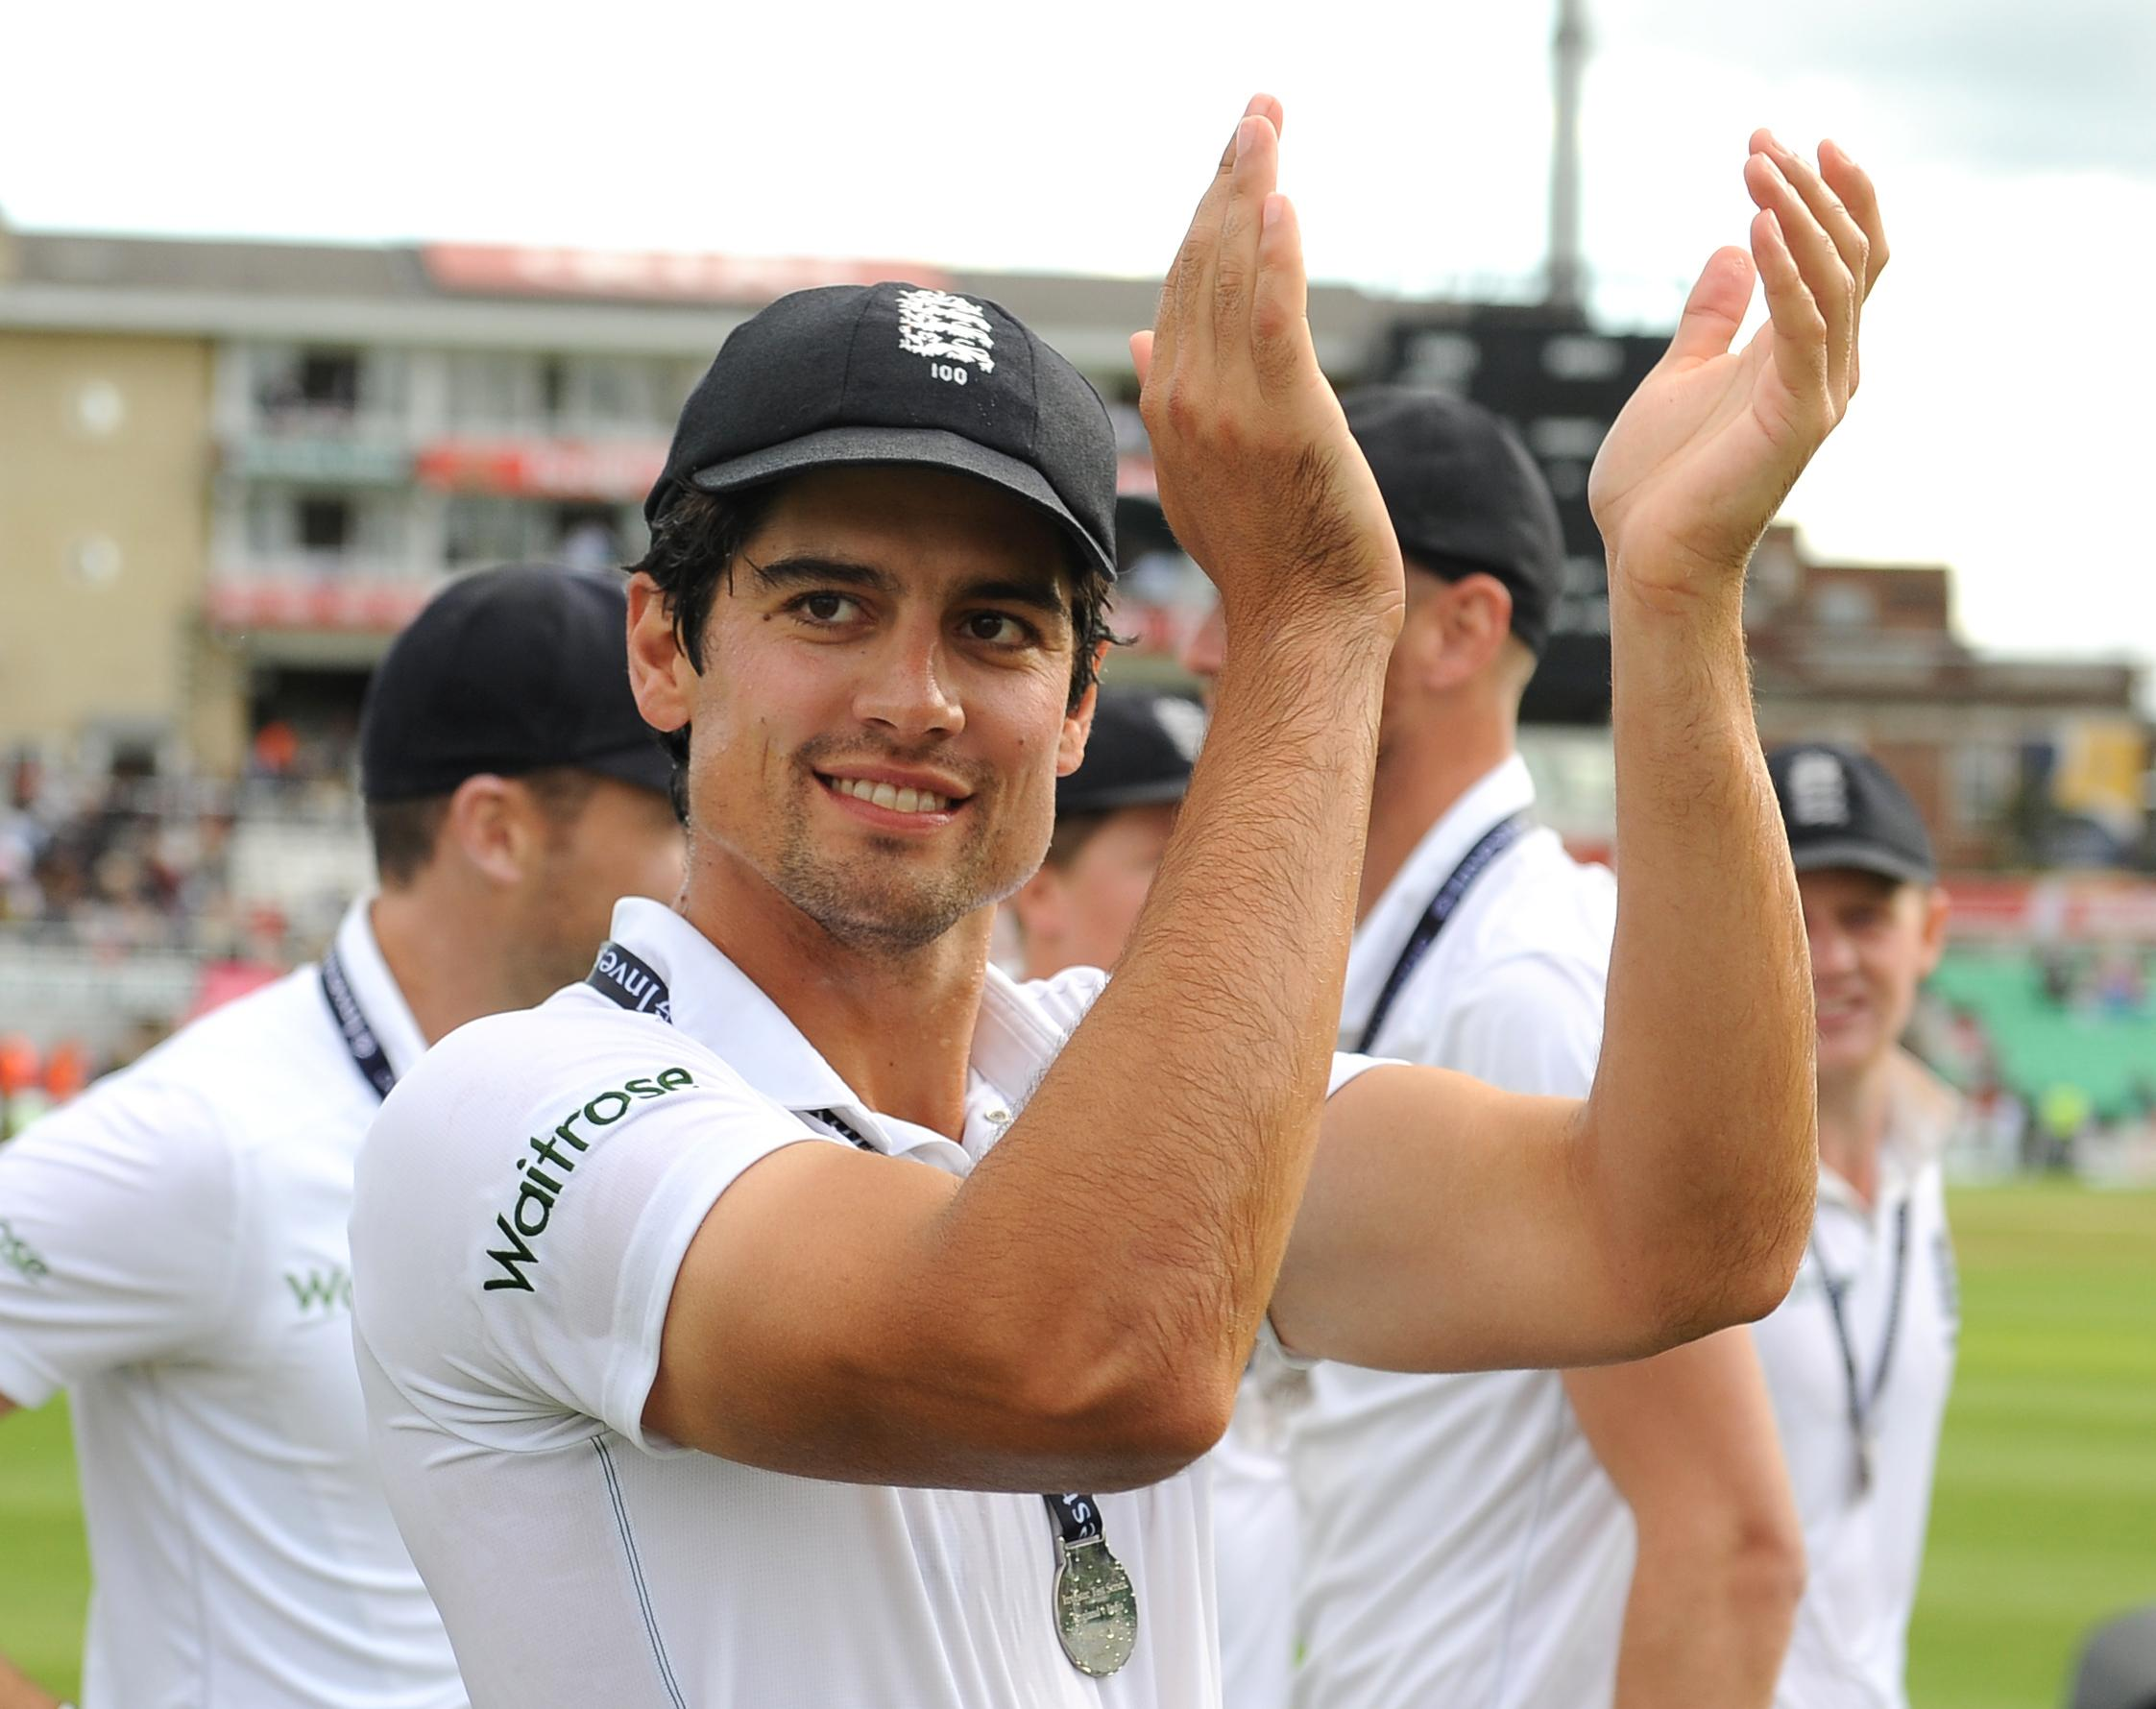 Alastair Cook has announced he will bow out after a 161st and final Test at The Oval